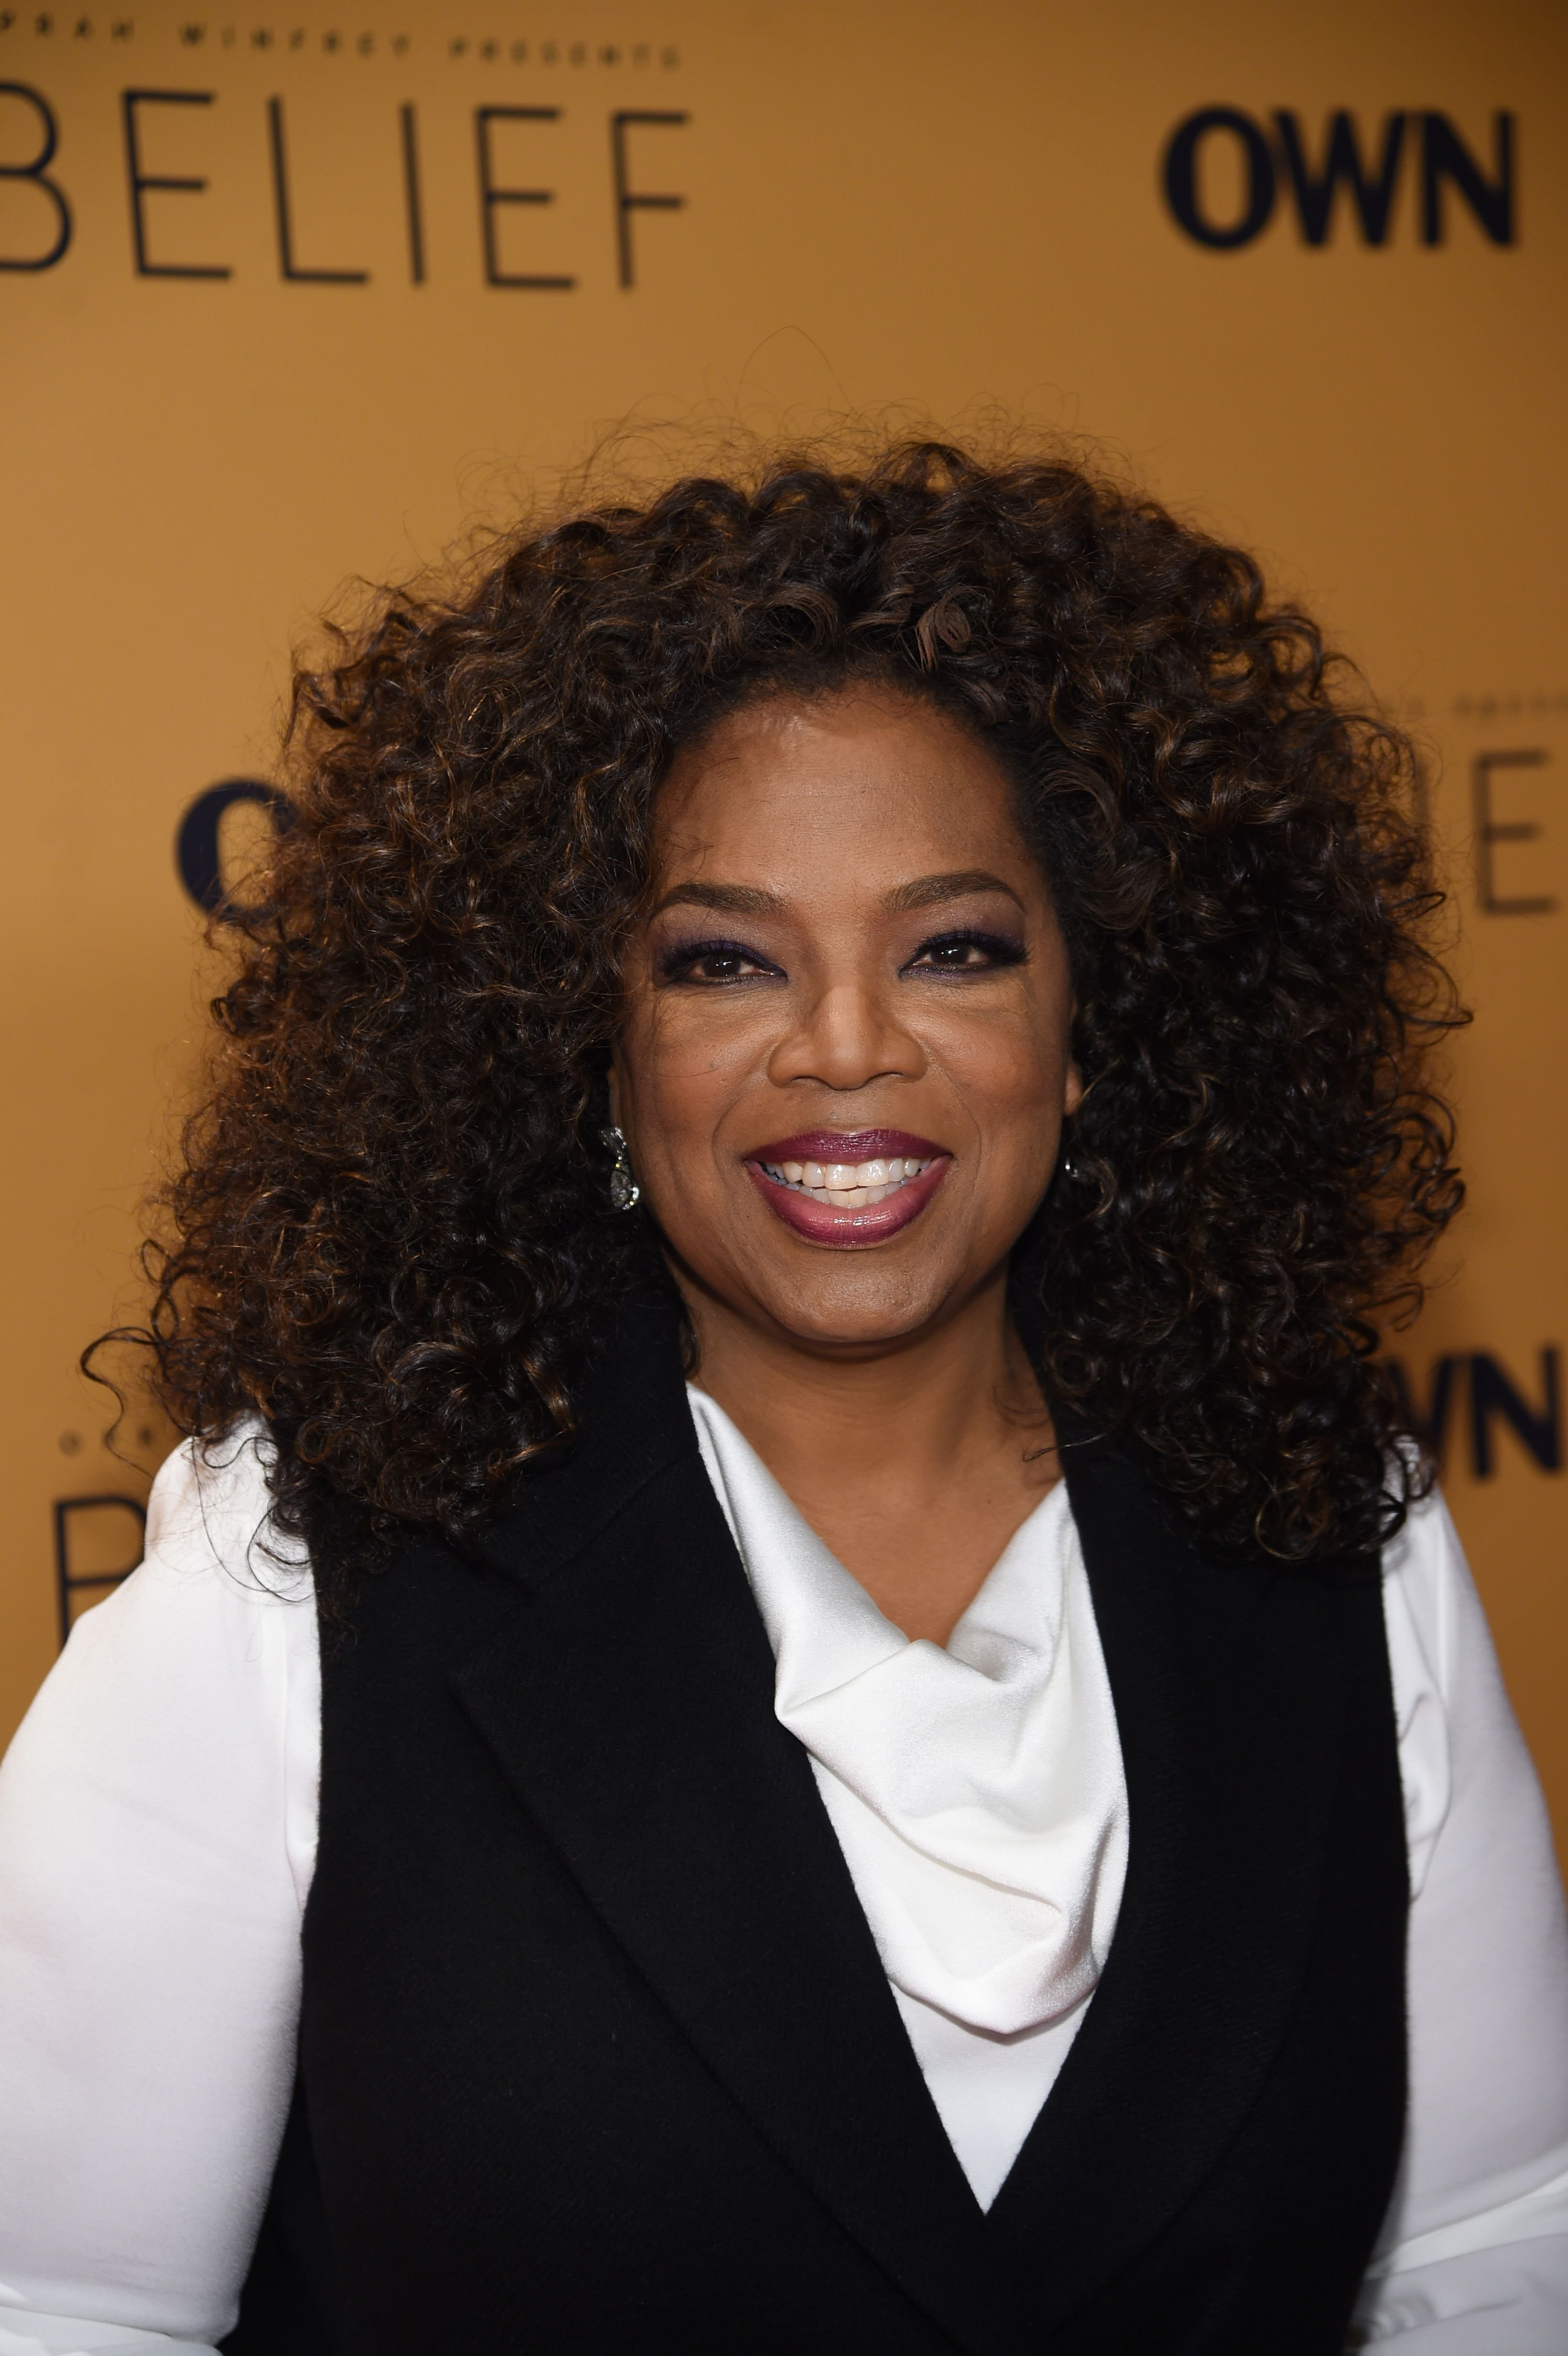 """Oprah Winfrey at the """"Belief"""" New York premiere on October 14, 2015 in New York City   Photo: Getty Images"""